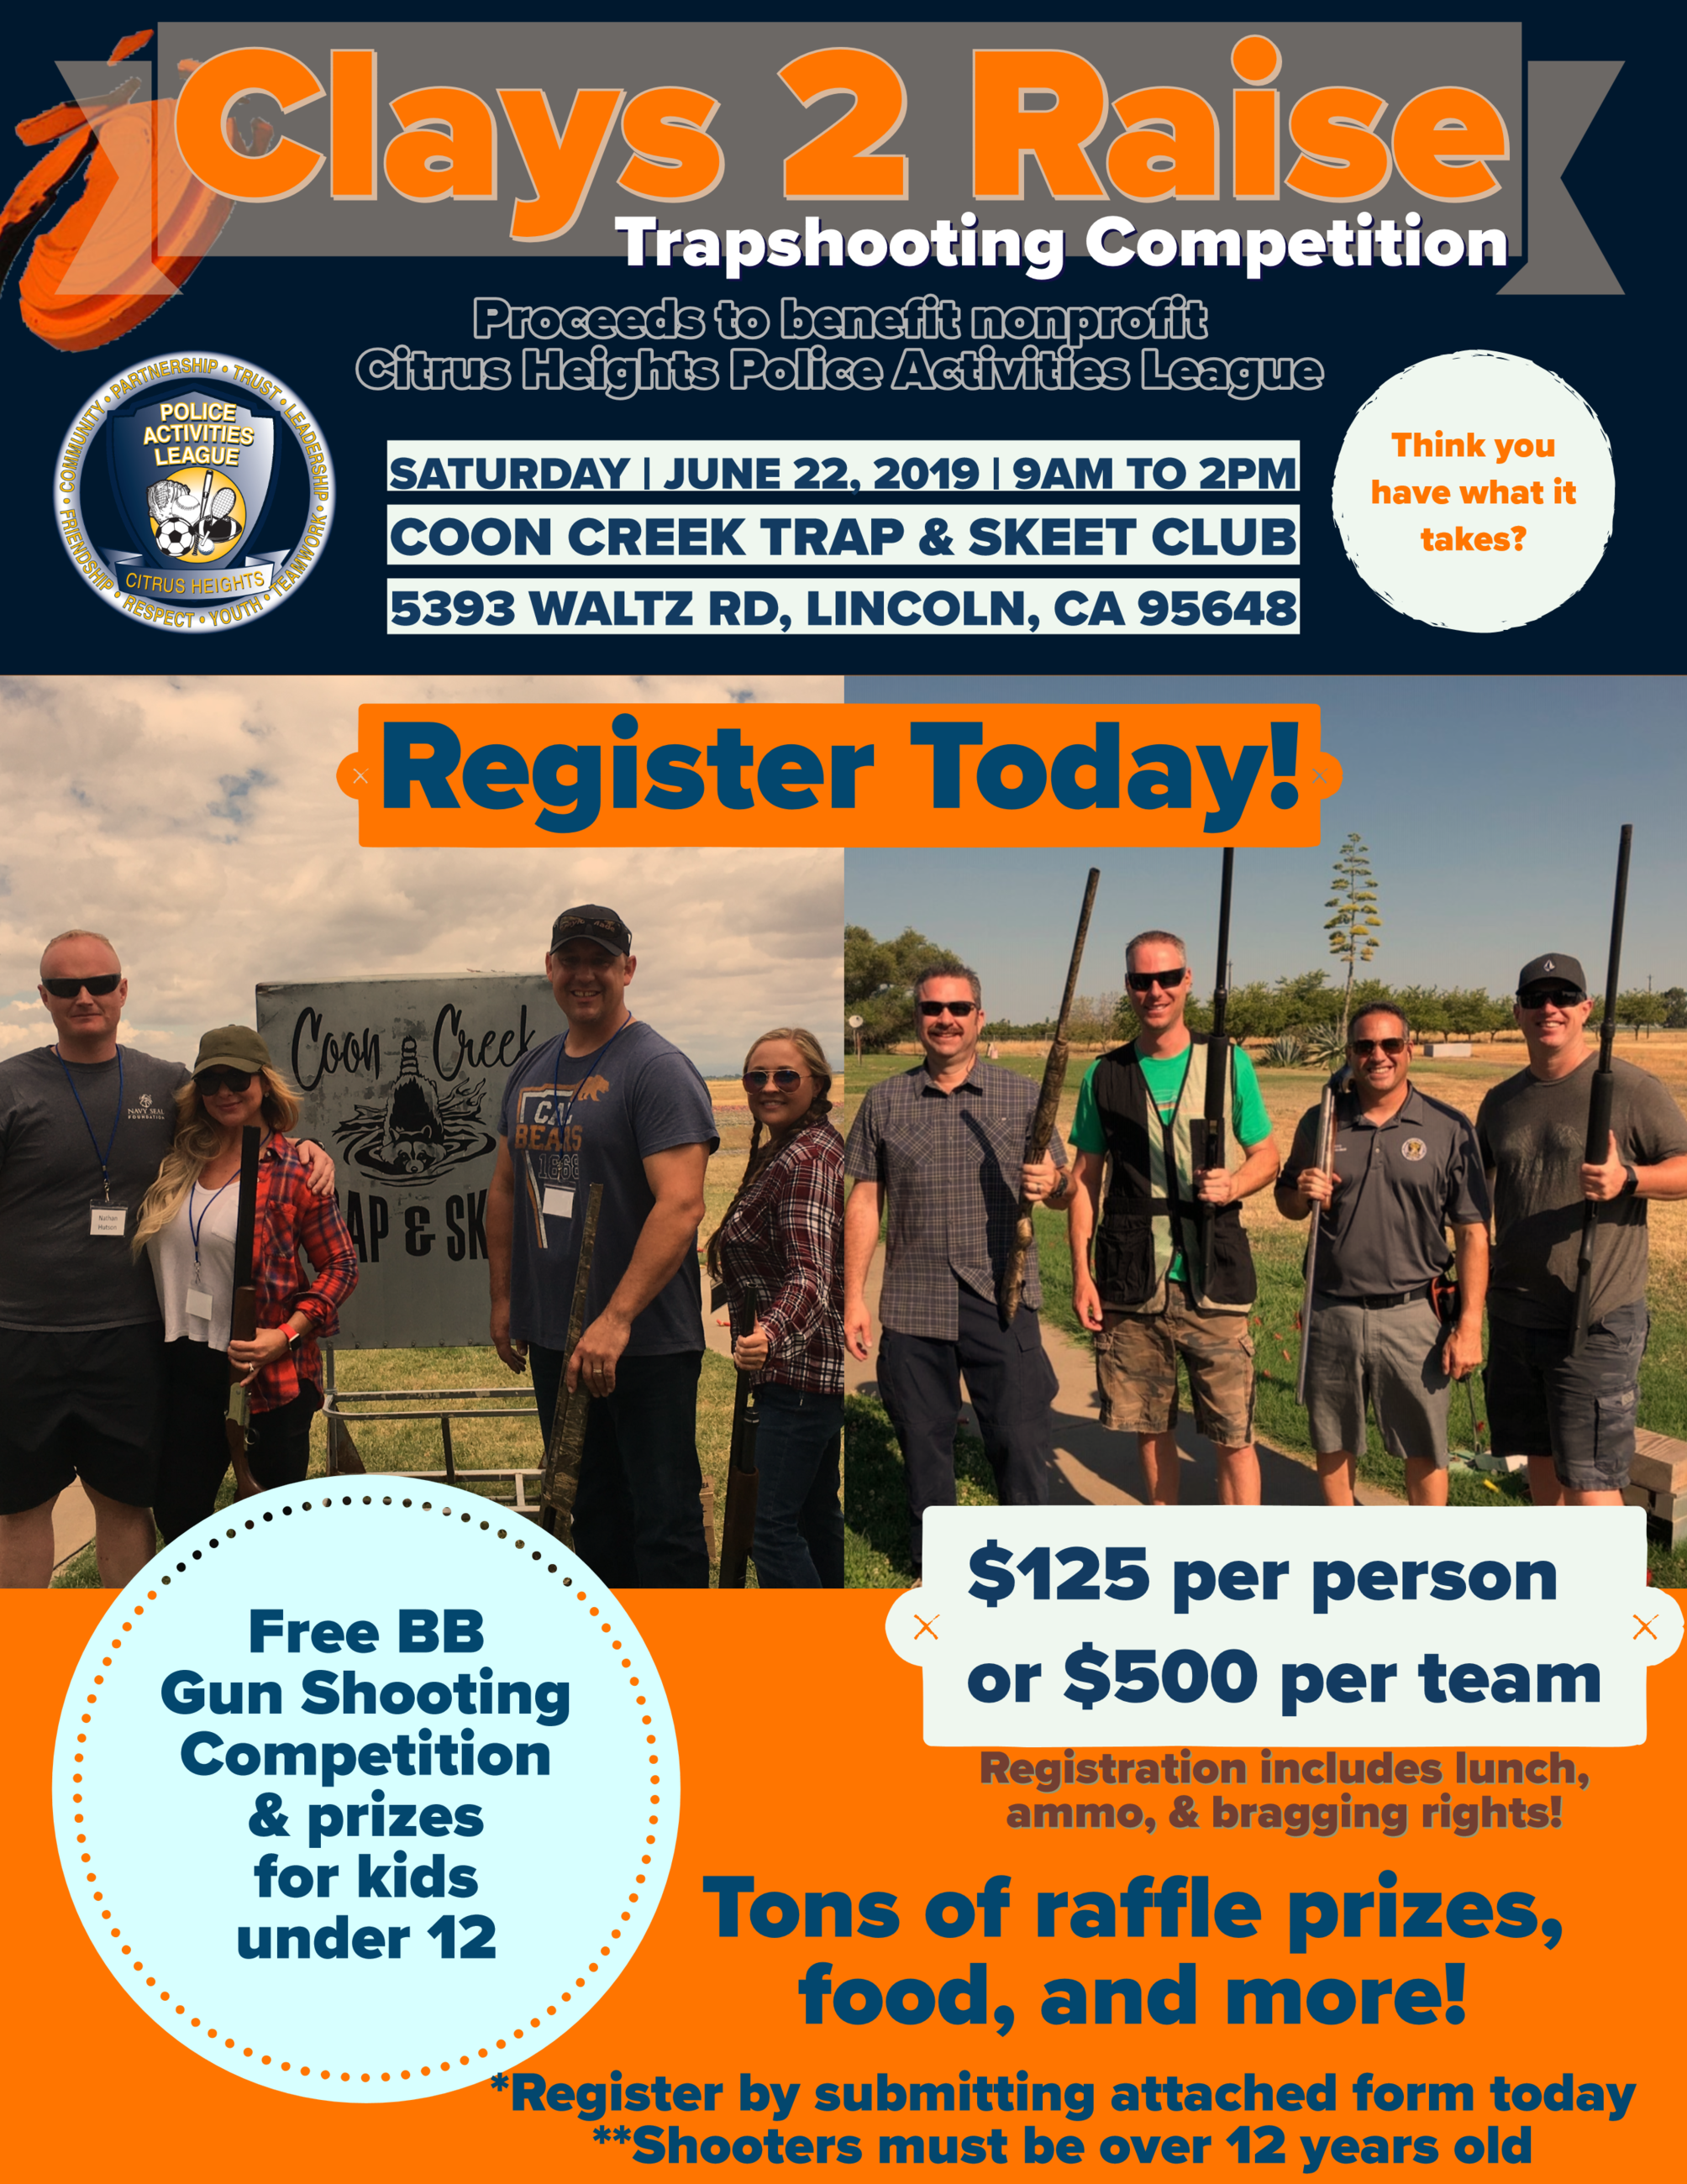 Clays2Raise Trapshoot Flyer 2019